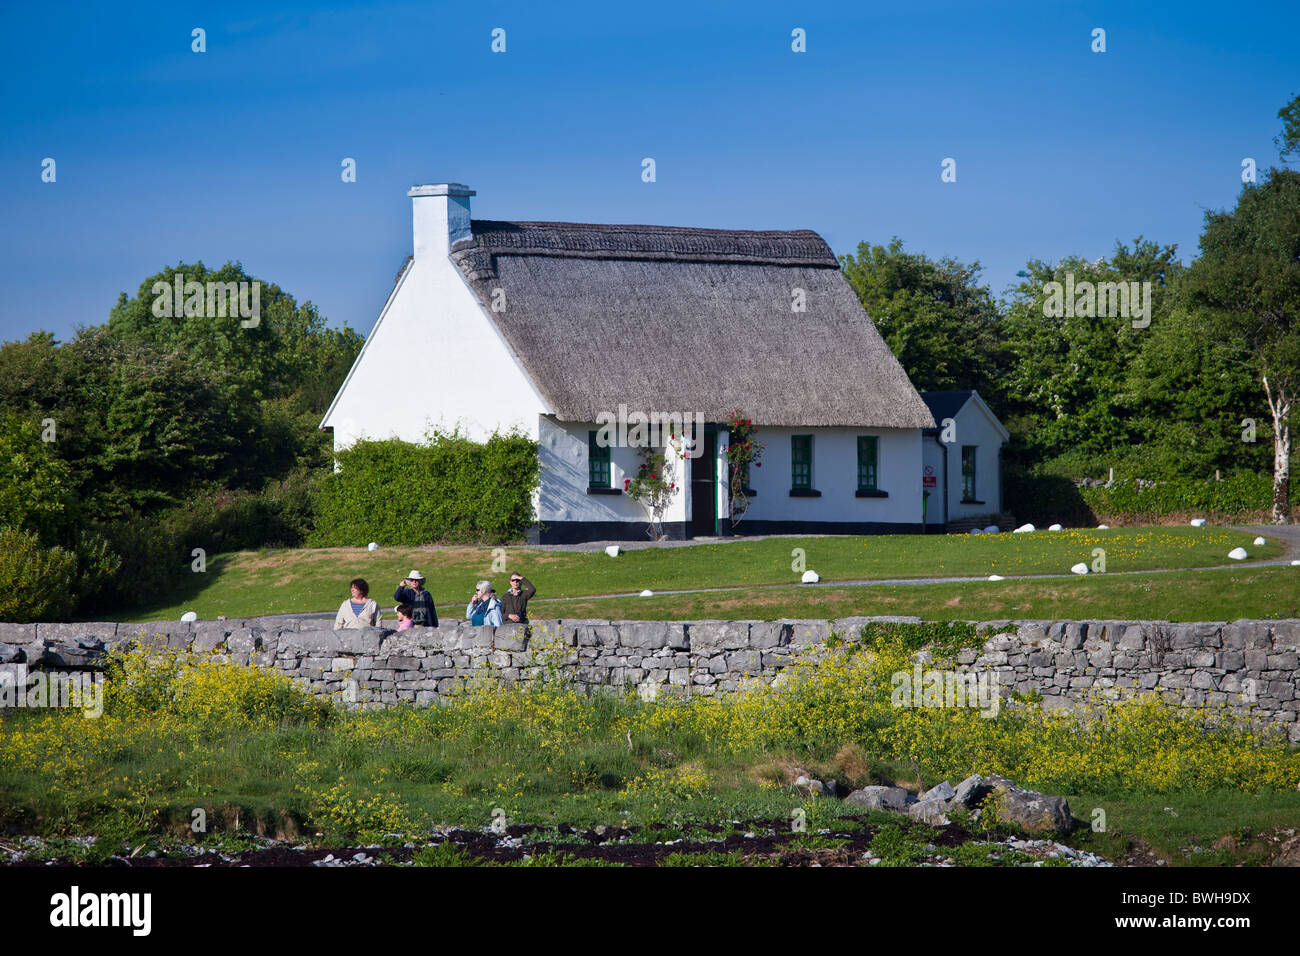 Thatched holiday cottage in Ballyvaughan, County Clare, Ireland - Stock Image